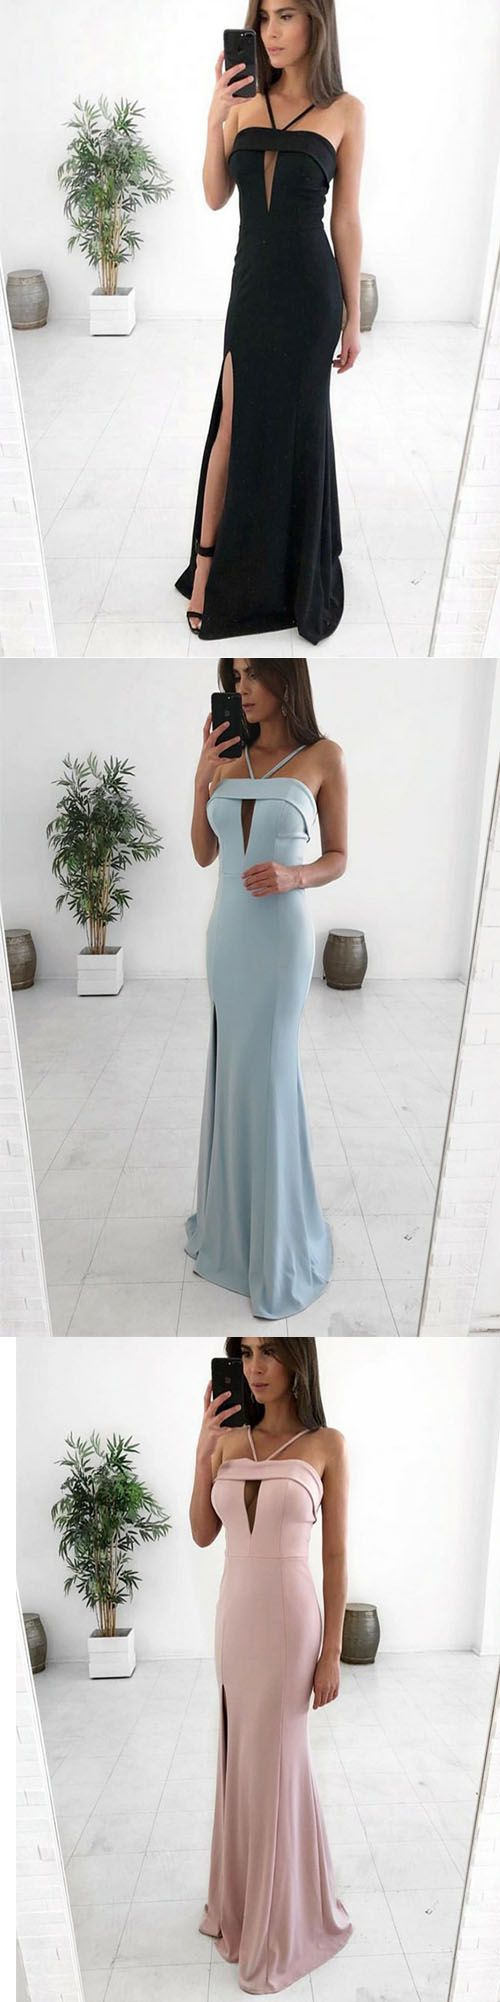 Sheath Spaghetti Straps Floor Length Satin Prom Dress with Split Keyhole, D0166